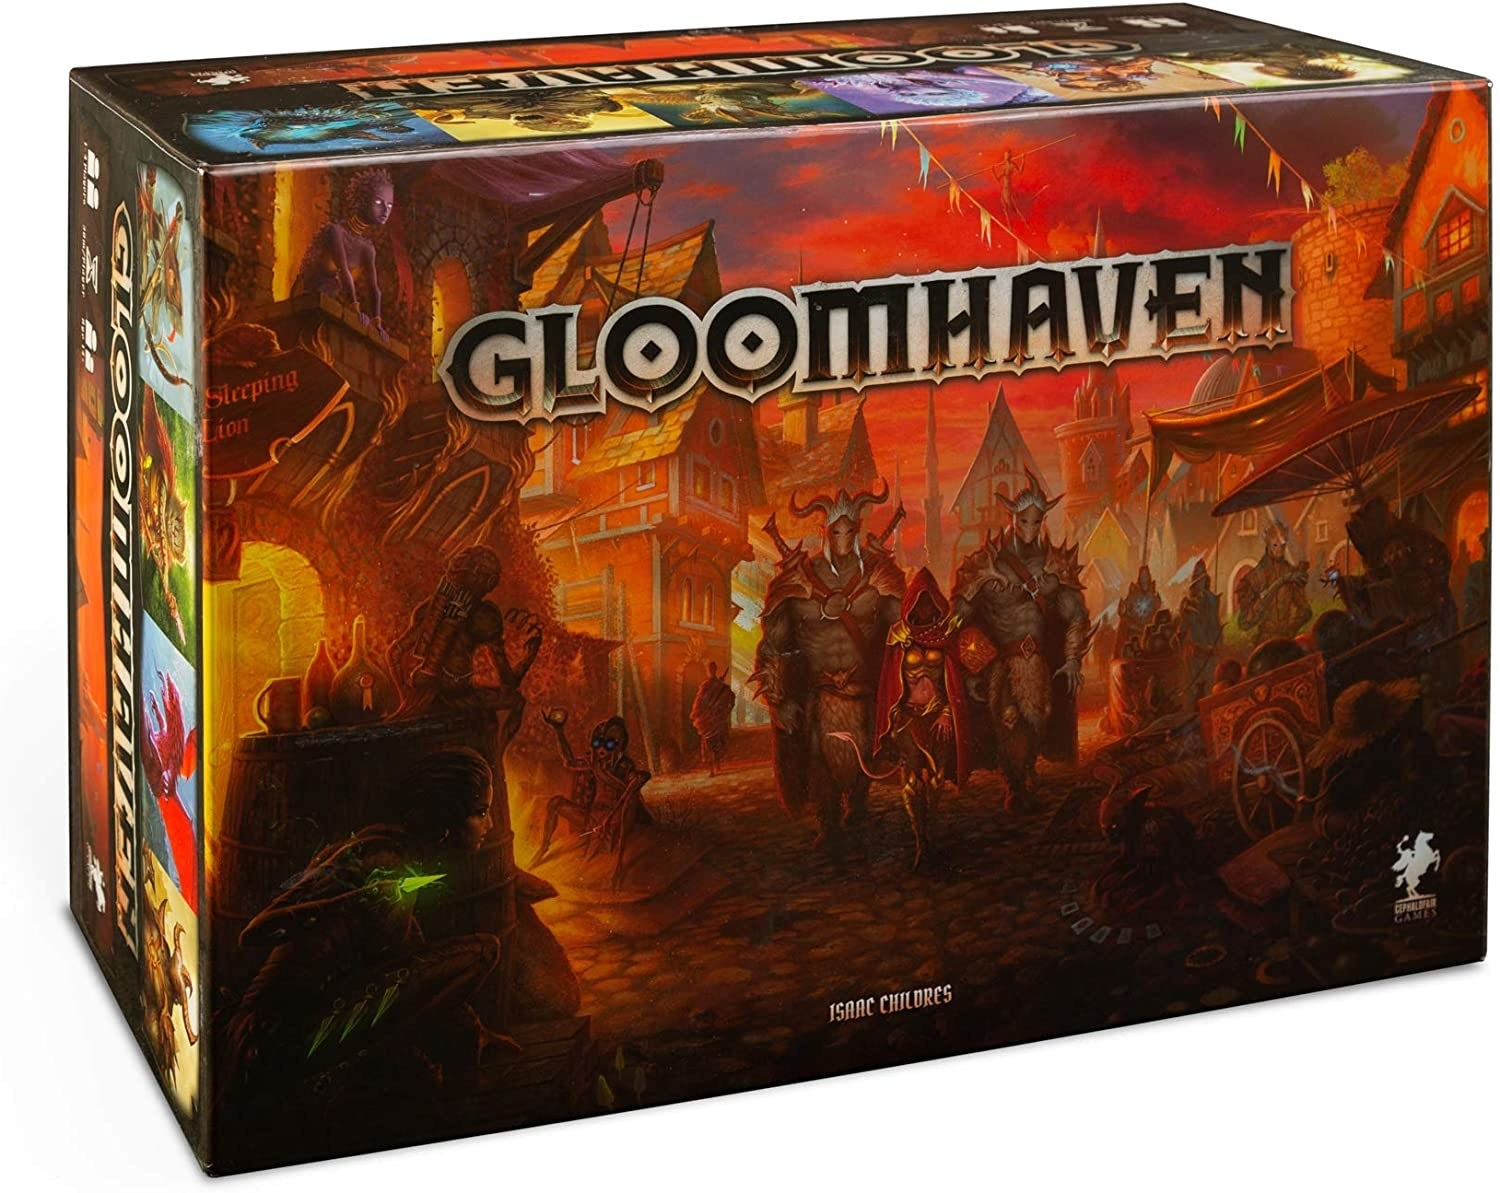 Gloomhaven board game box with dark, red and black medieval imagery